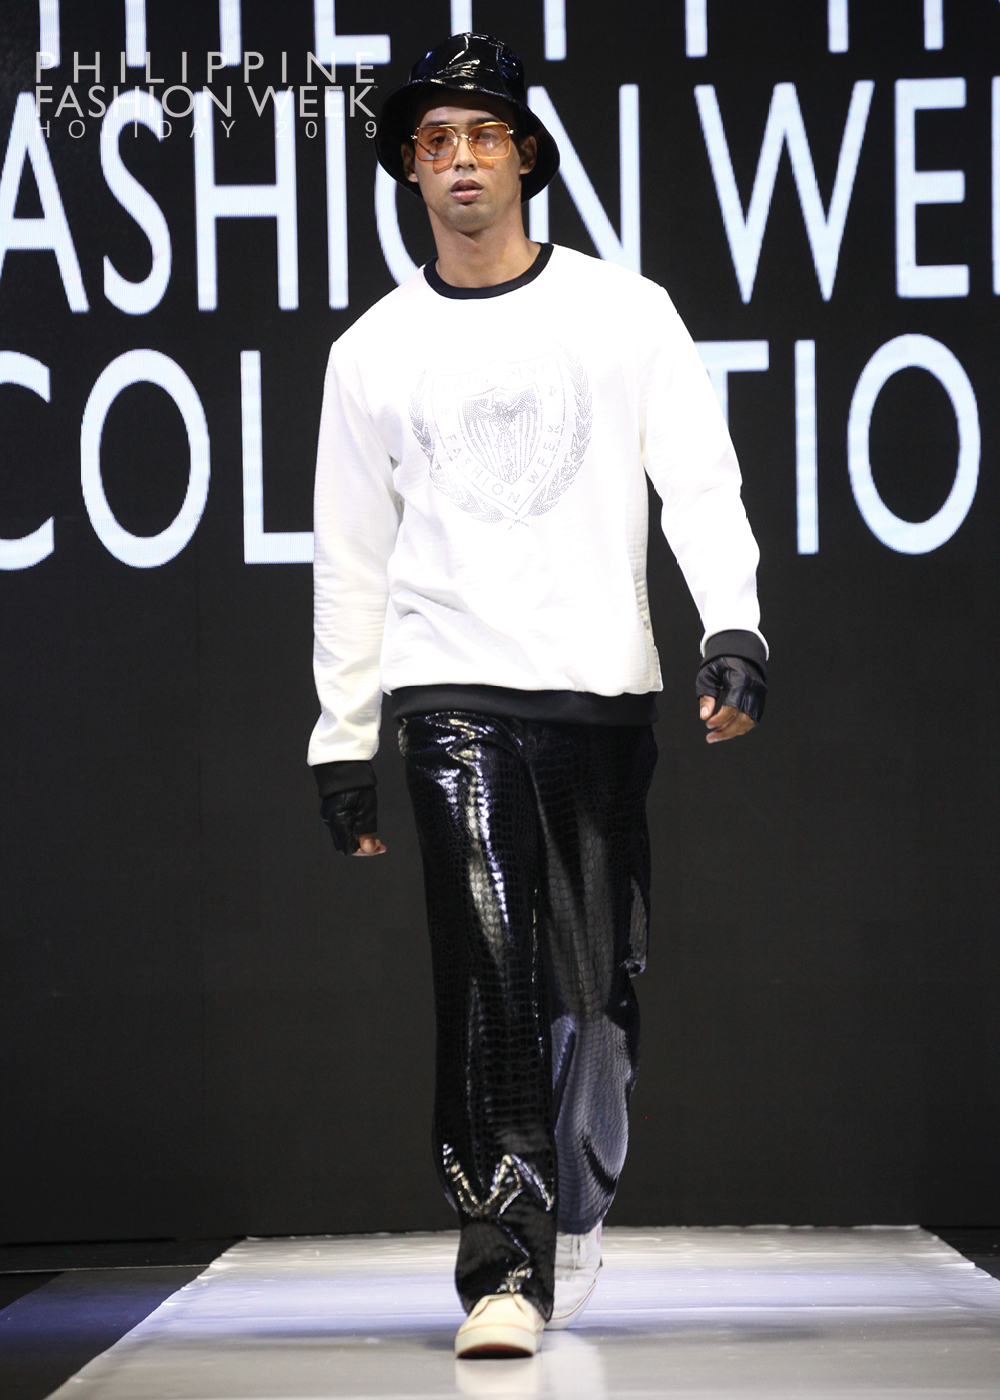 PhFW_collection show6.jpg